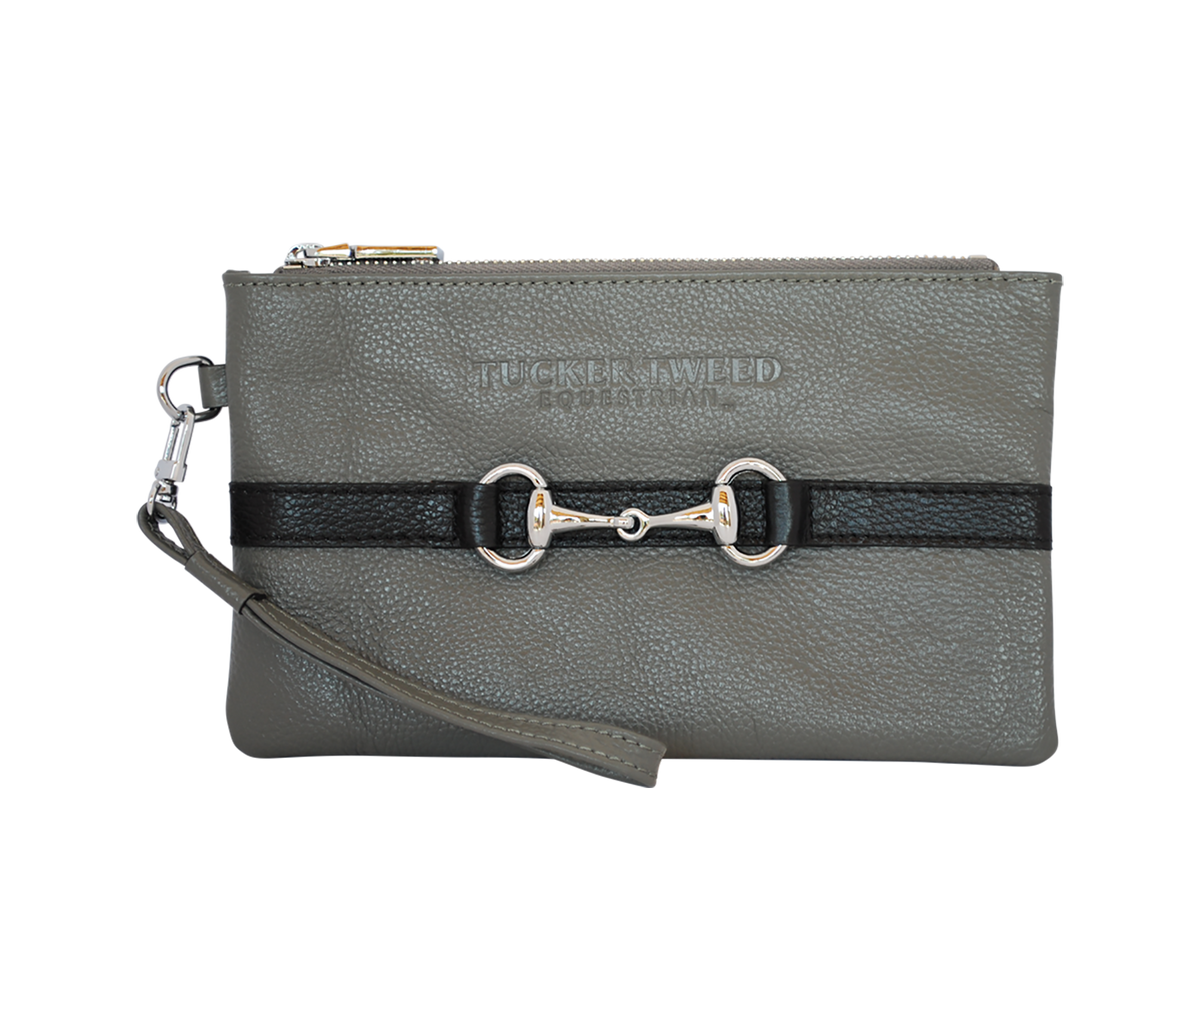 Tucker Tweed Leather Handbags Grey/Black The Wellington Wristlet